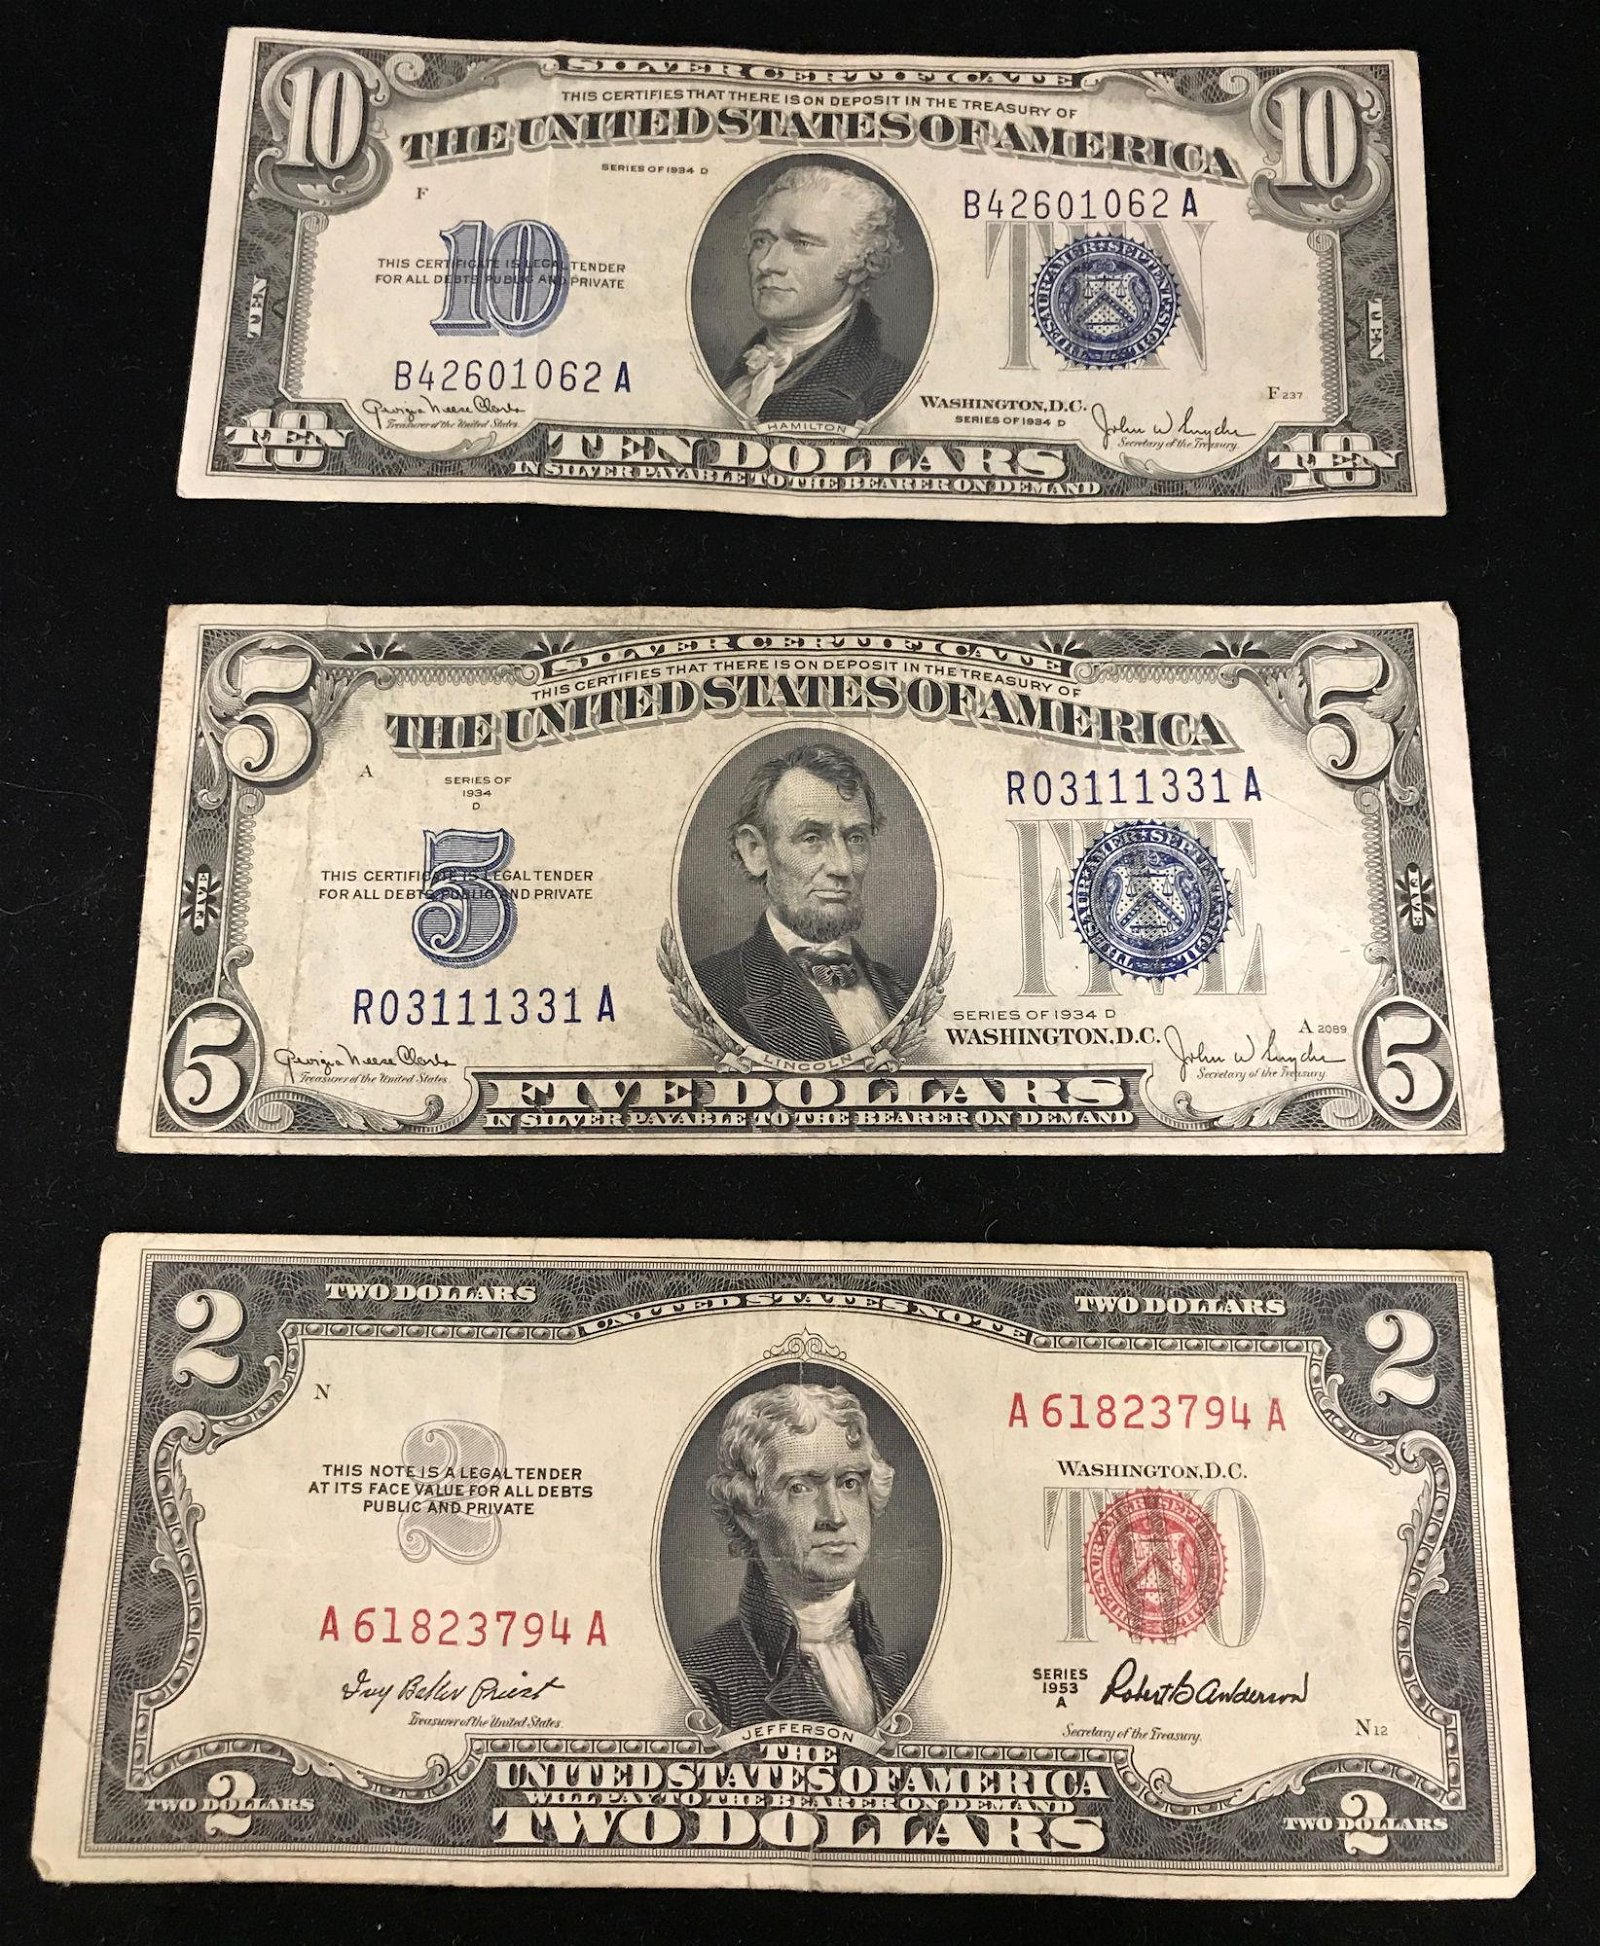 U.S. CURRENCY INCLUDING SERIES 1934 TEN DOLLAR SILVER